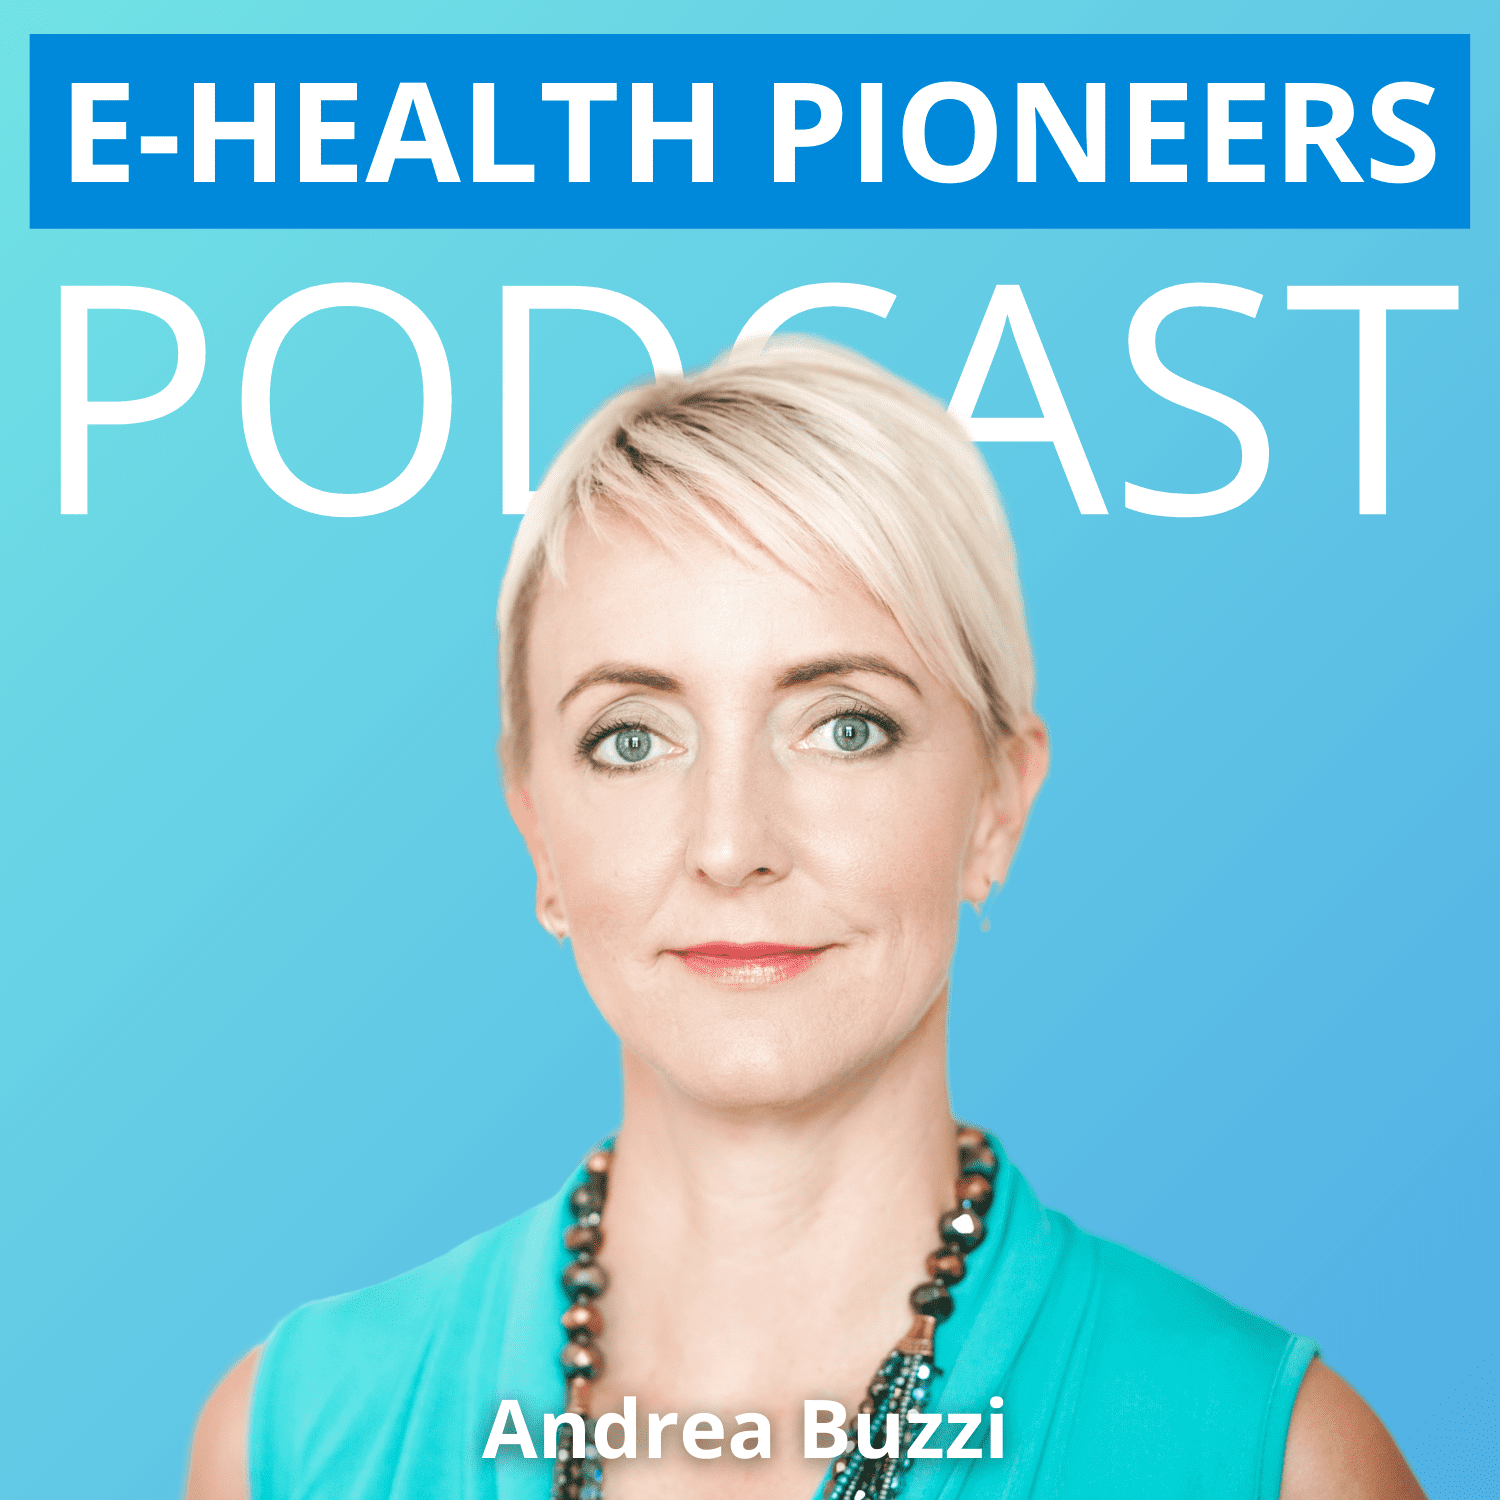 E-Health Pioneers Podcast